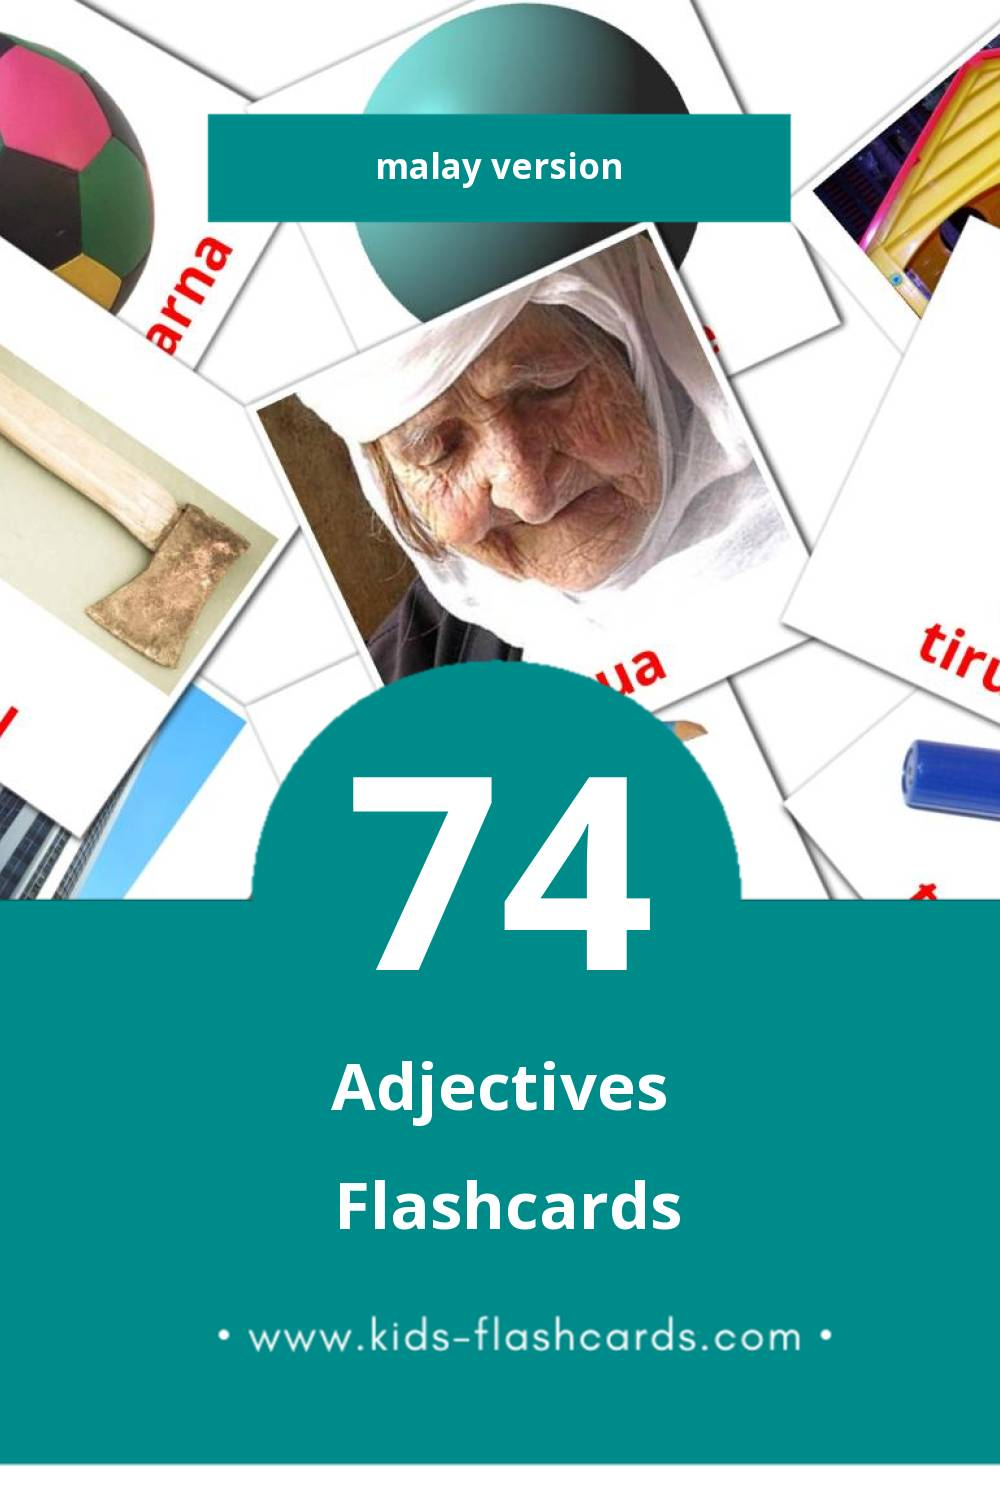 Visual ADJEKTIF Flashcards for Toddlers (74 cards in Malay)